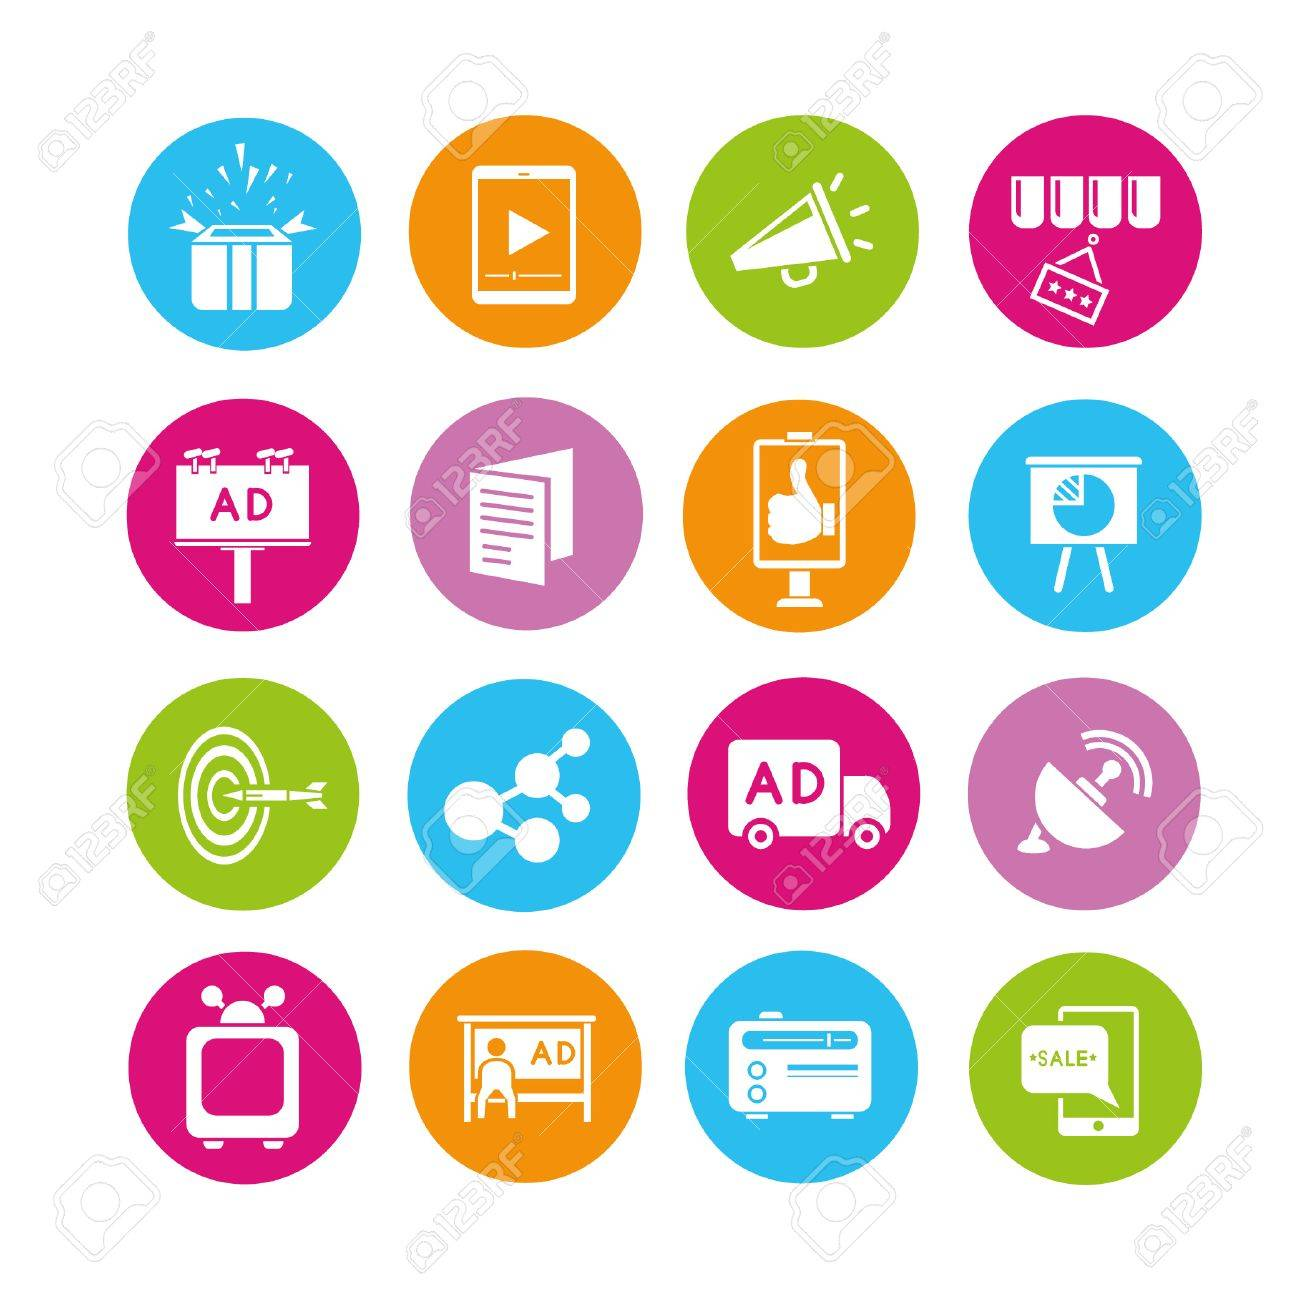 marketing icons set, buttons Stock Vector - 22321880